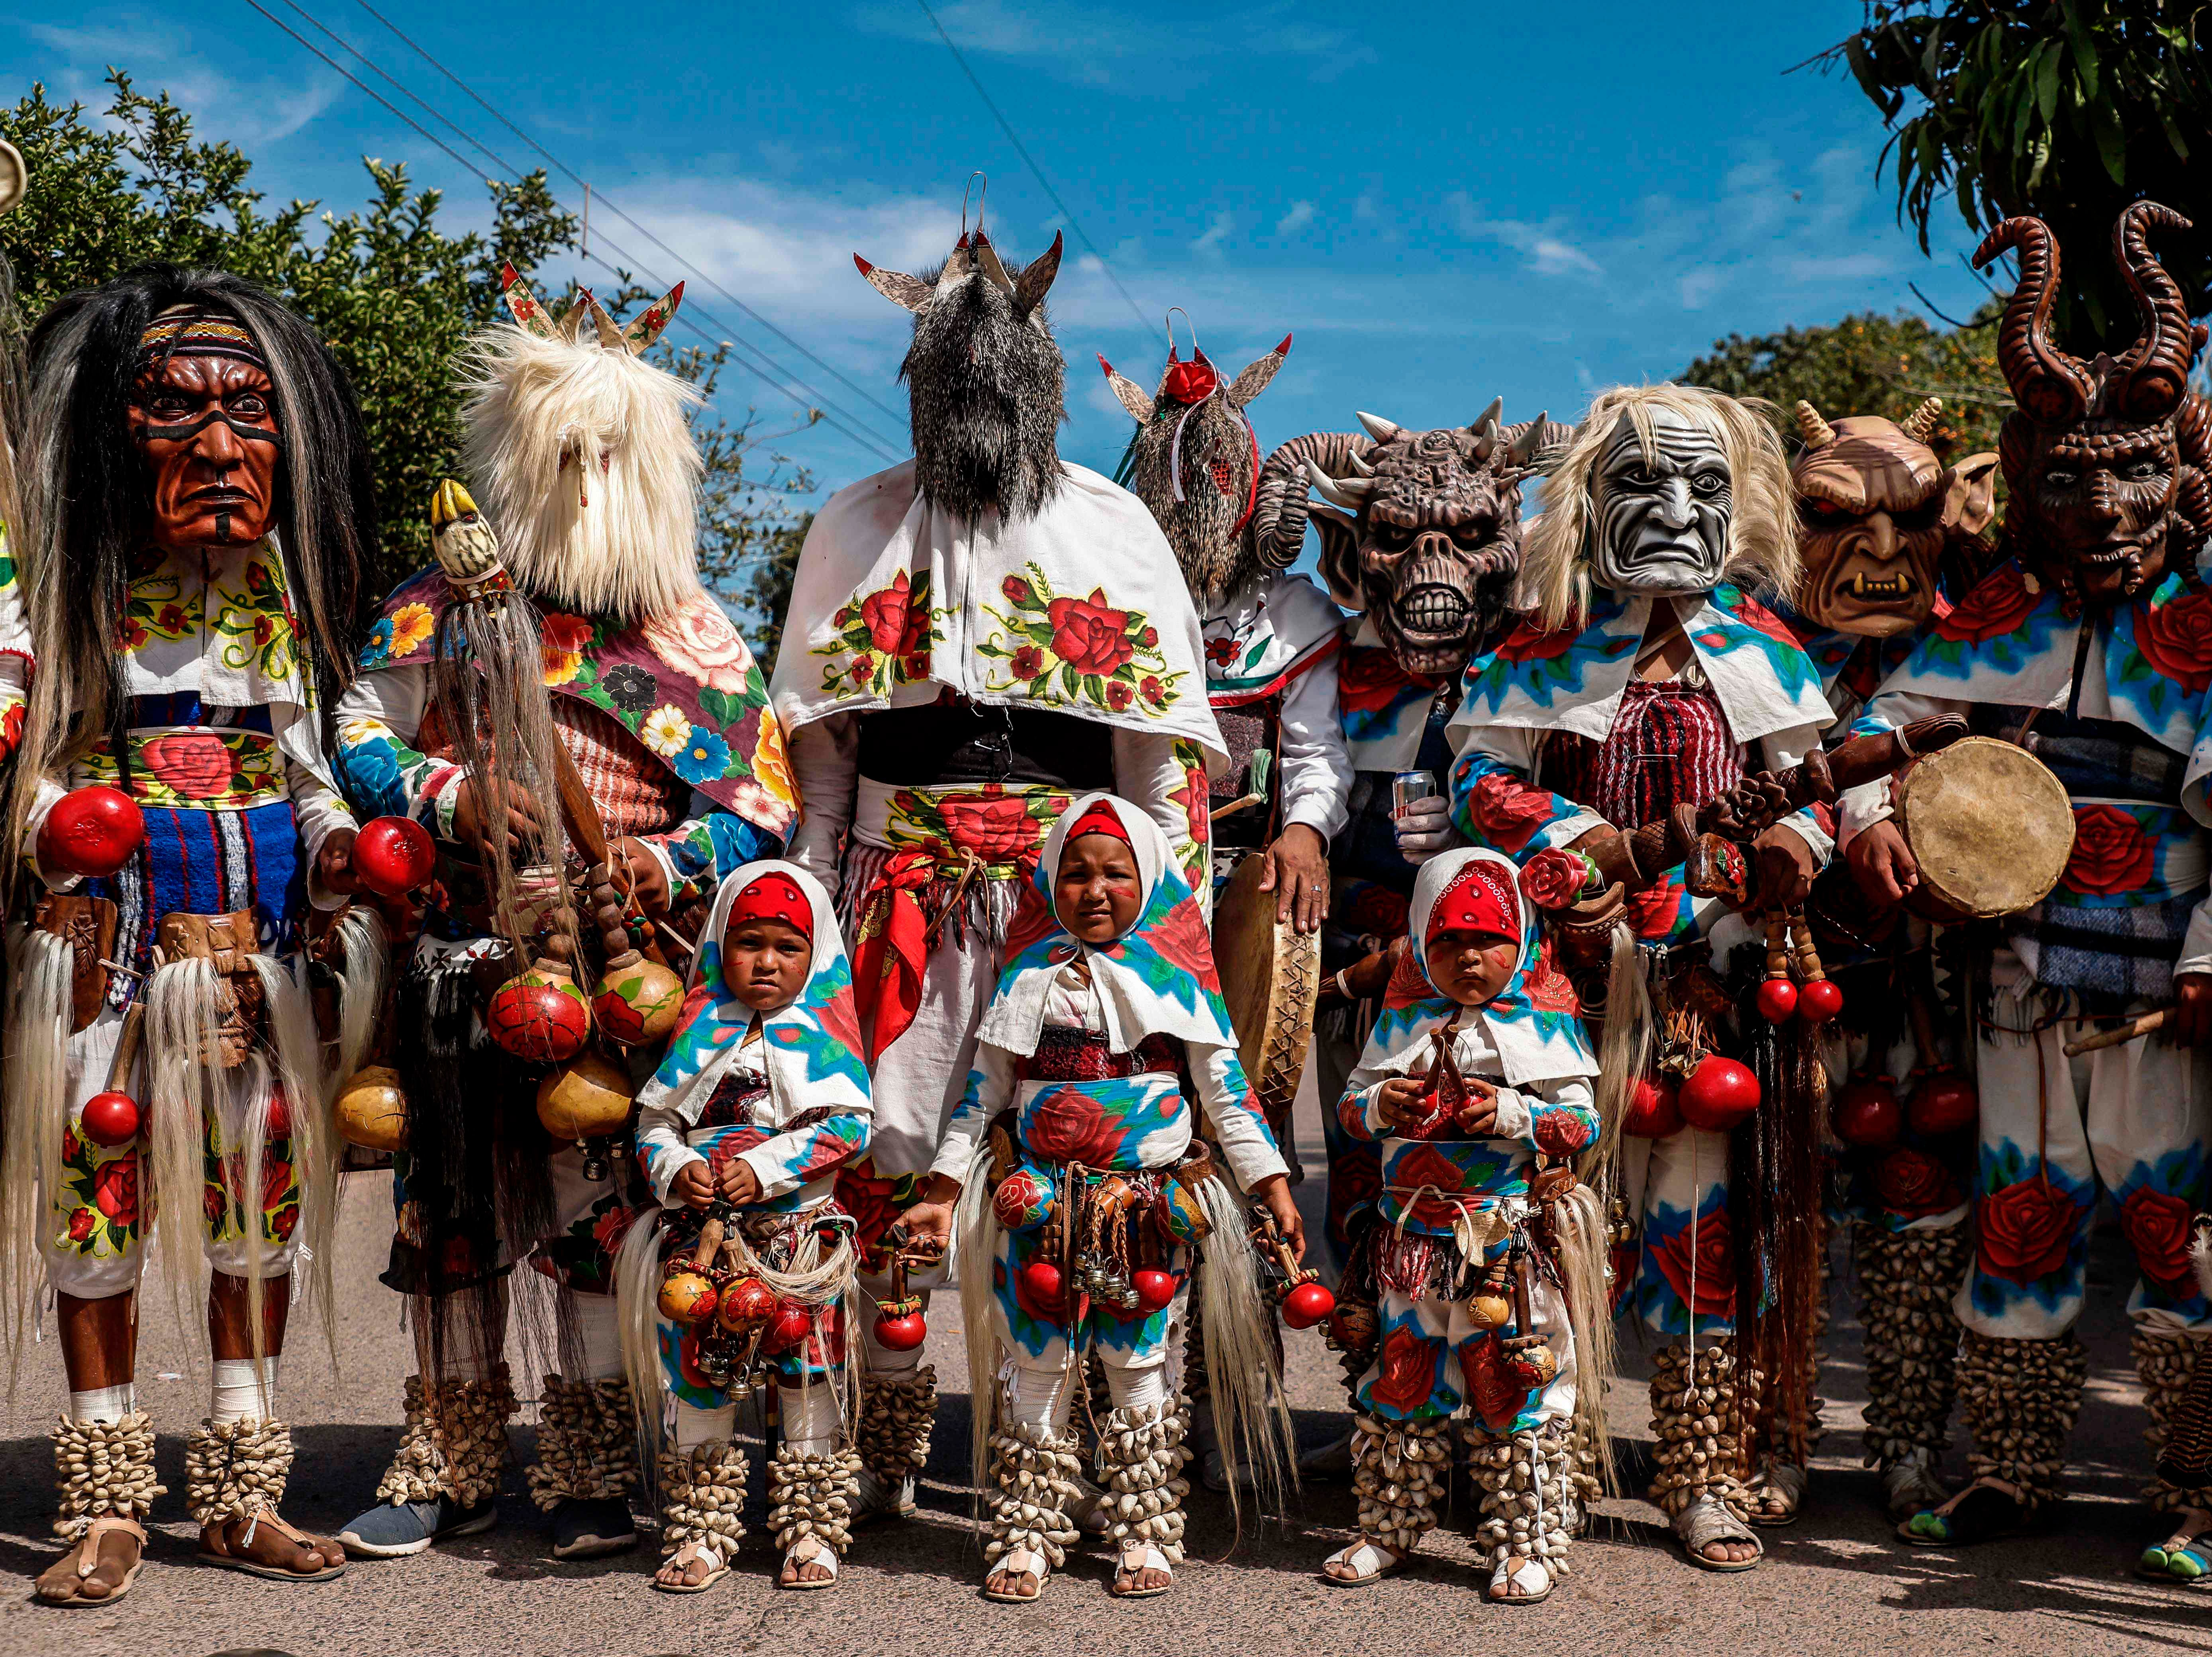 Members of the Mayo-Yoreme ethnic group celebrate Holy Week in their typical costumes dancing in San Miguel Zapotitlan, Sinaloa state, Mexico on April 19, 2019.